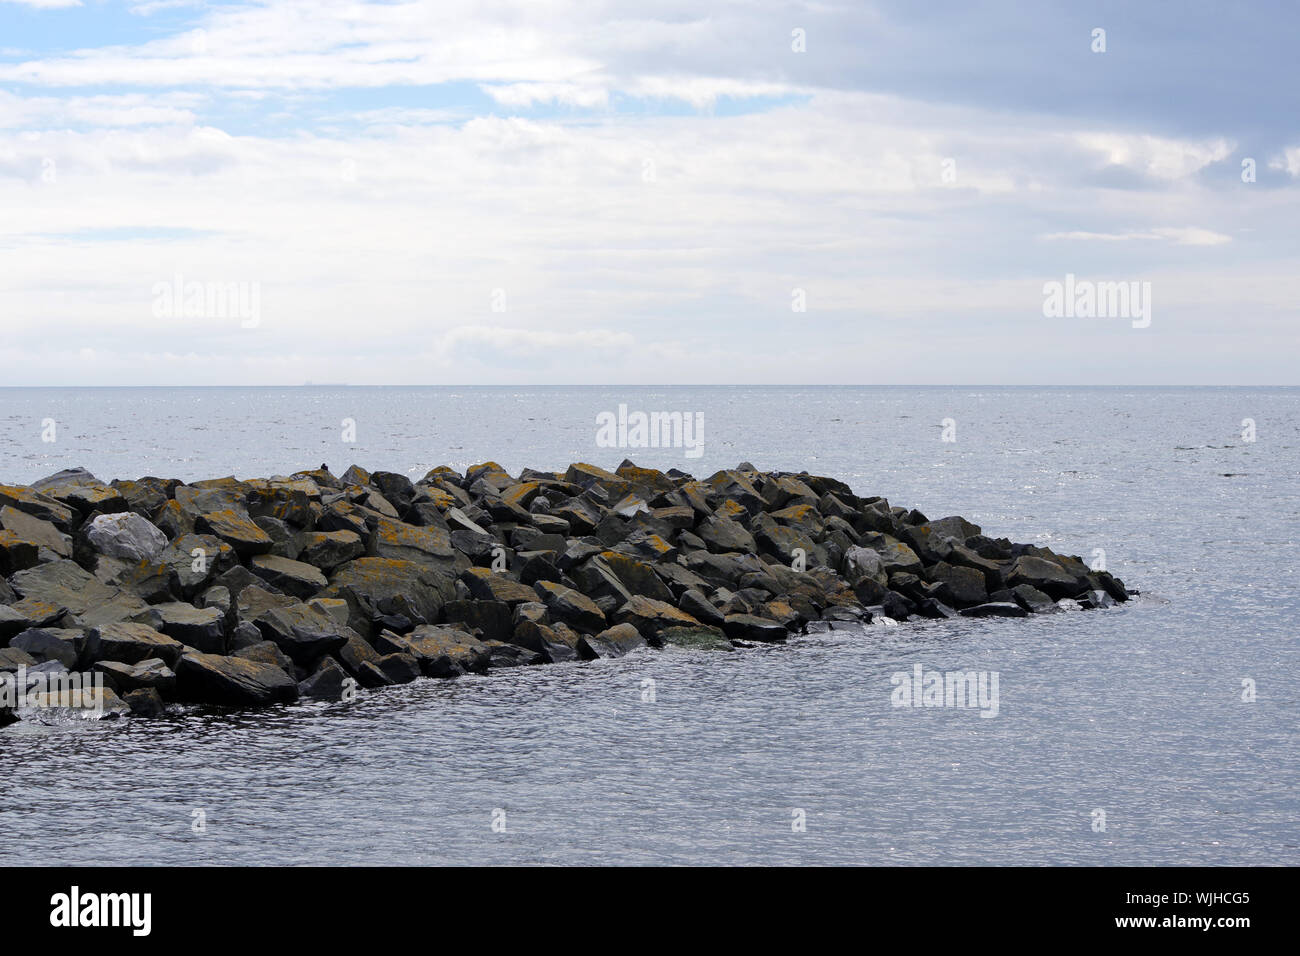 Flood protection barrier in Saltcoats Harbour, North Ayrshire, Scotland Stock Photo